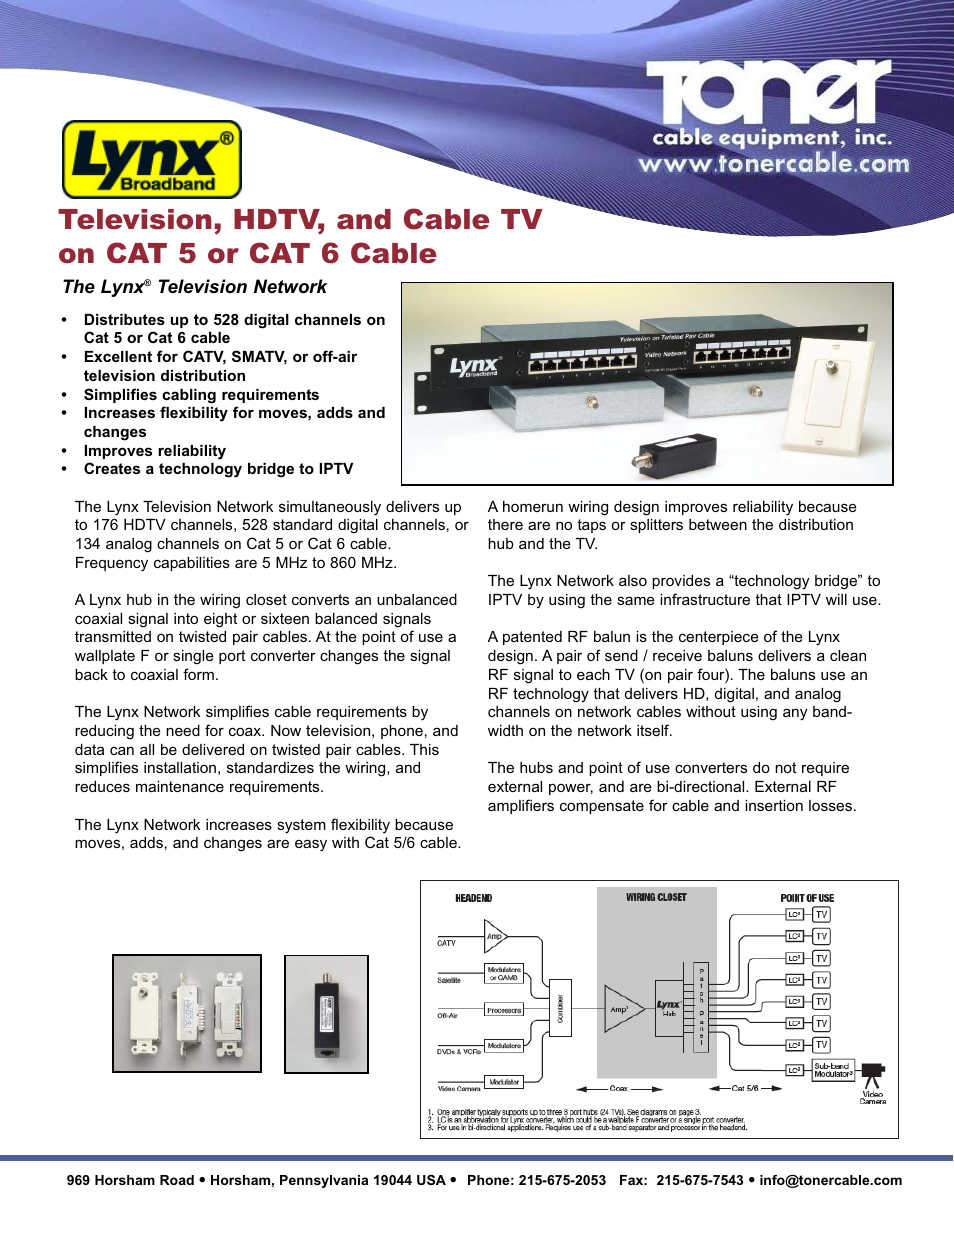 Toner Cable 040 0101 Television Rf On Cat 5 6 8 Port Lynx Wiring For Tv Lt Hub With Rackmount User Manual 2 Pages